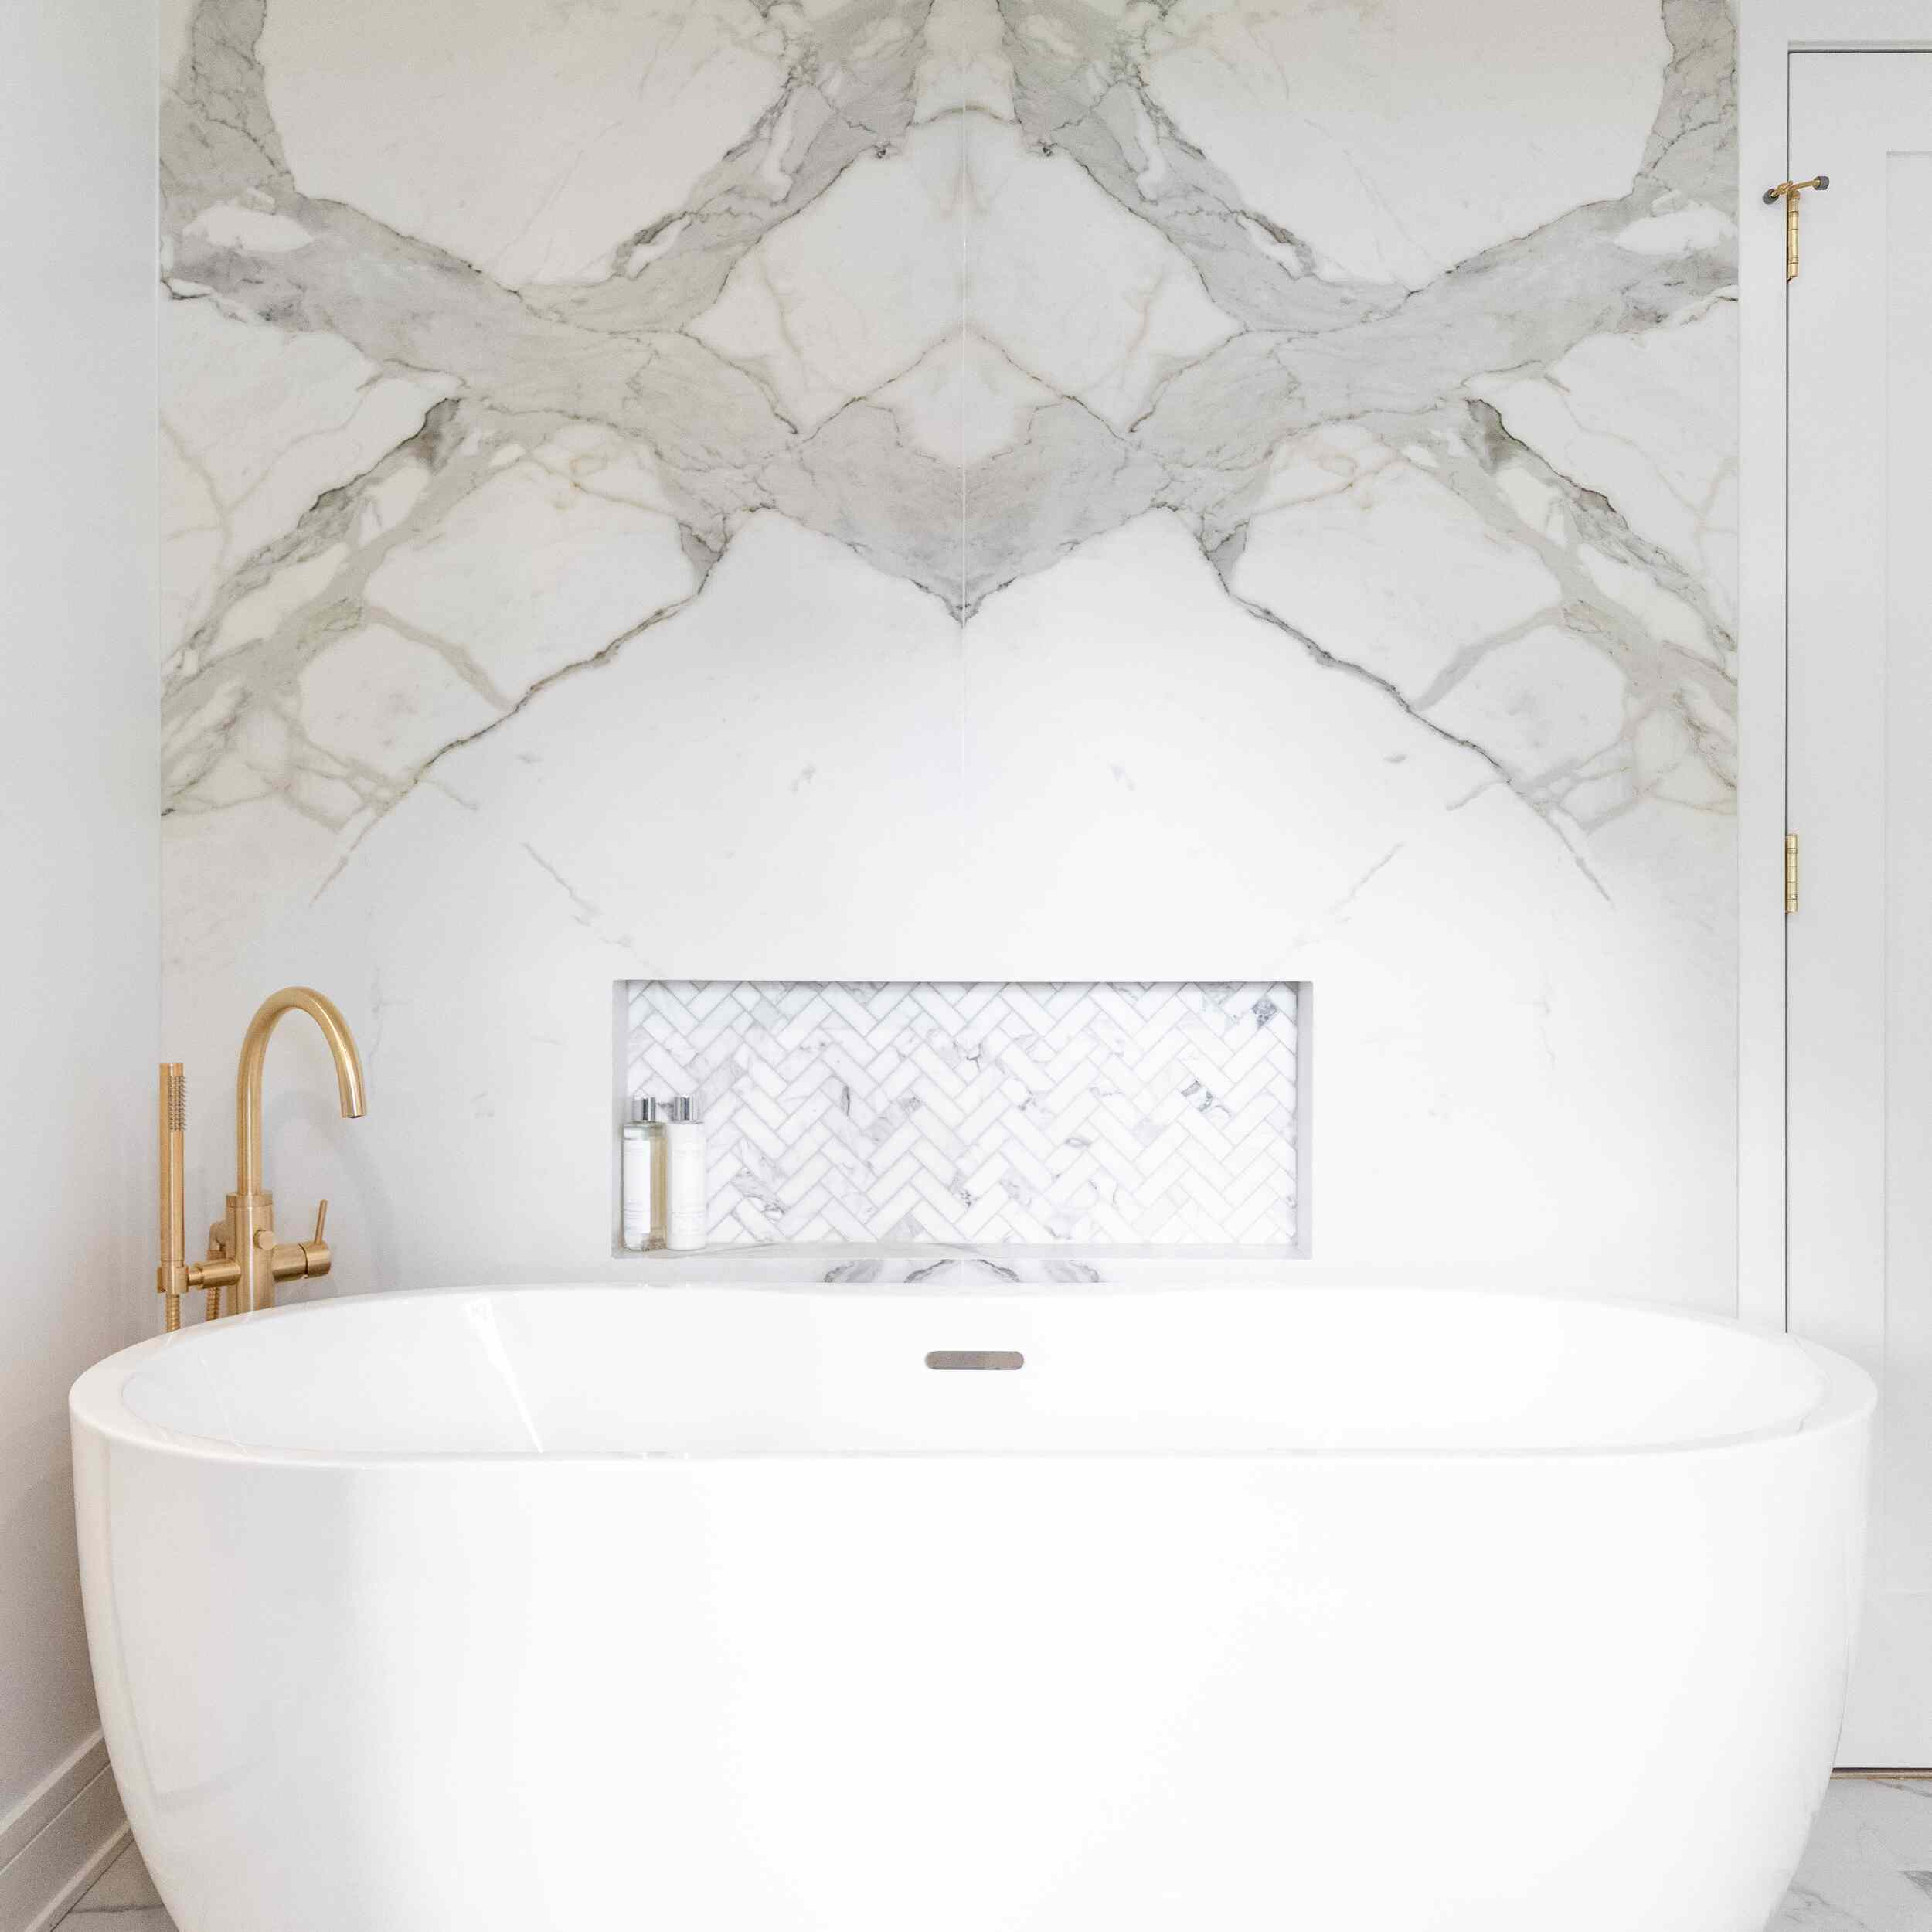 Elegant bathroom with marble, white soaker tub, and metallic accents